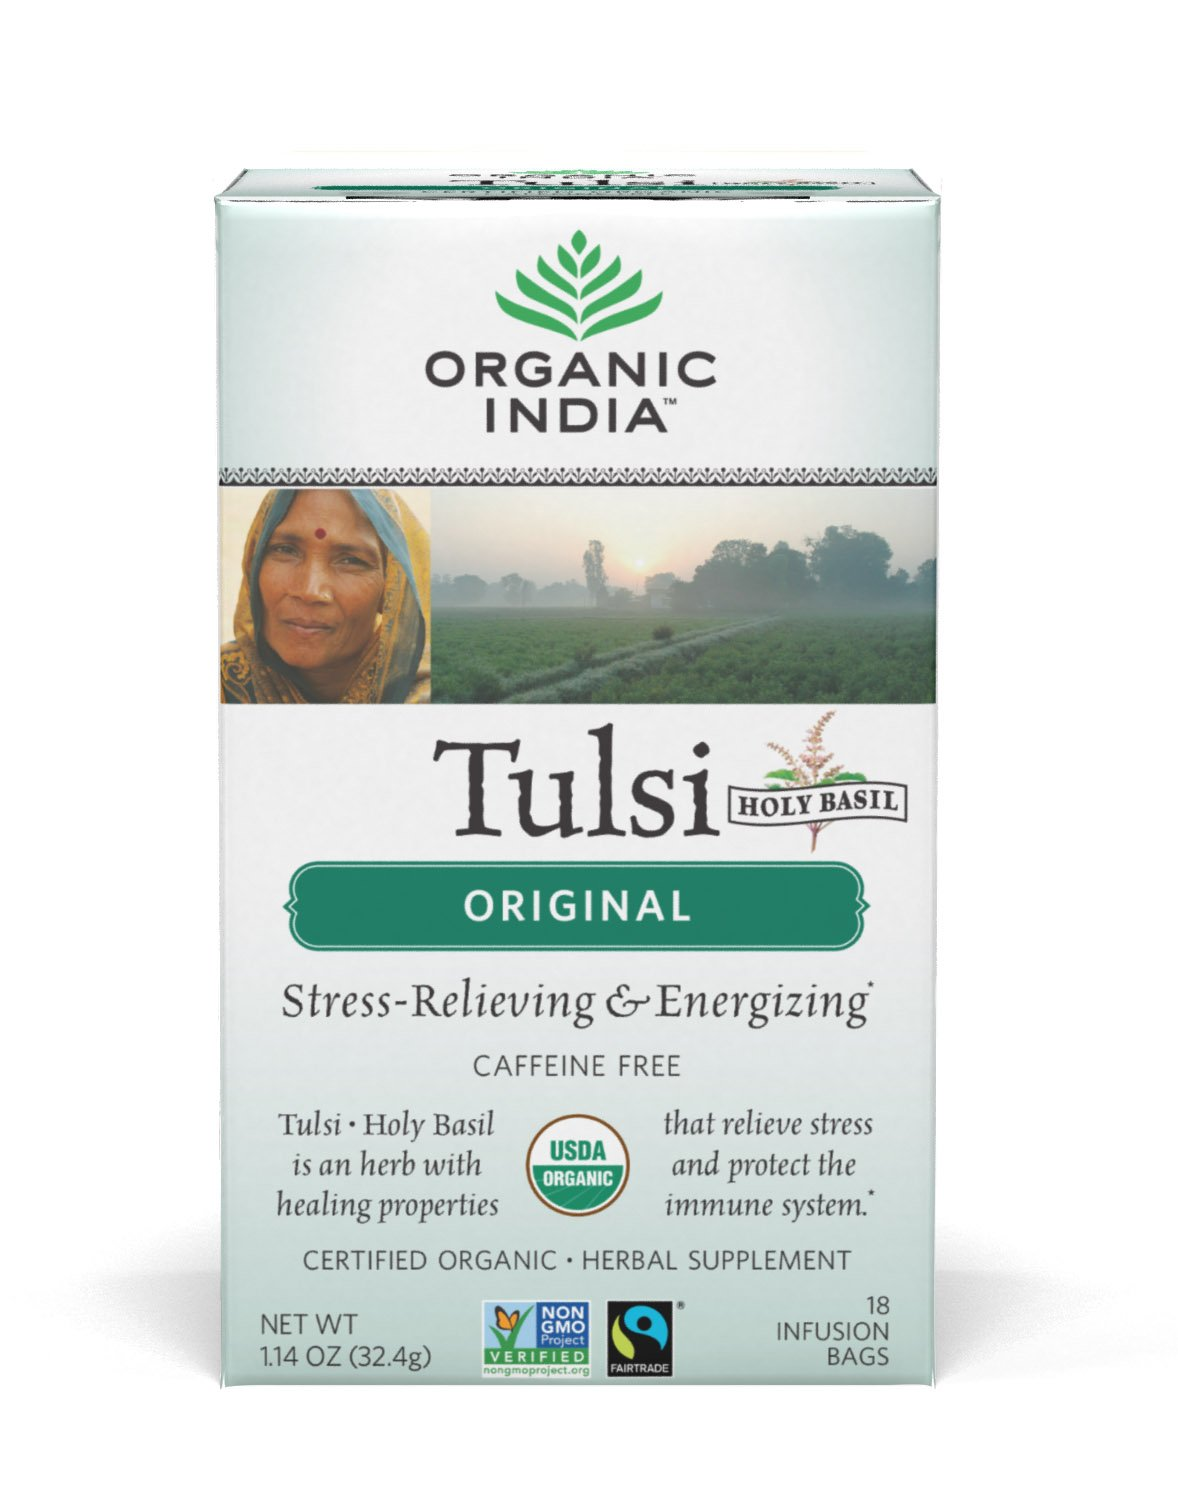 Organic India Tulsi Tea Original, 18-Count Teabags (Pack of 6) by Organic India